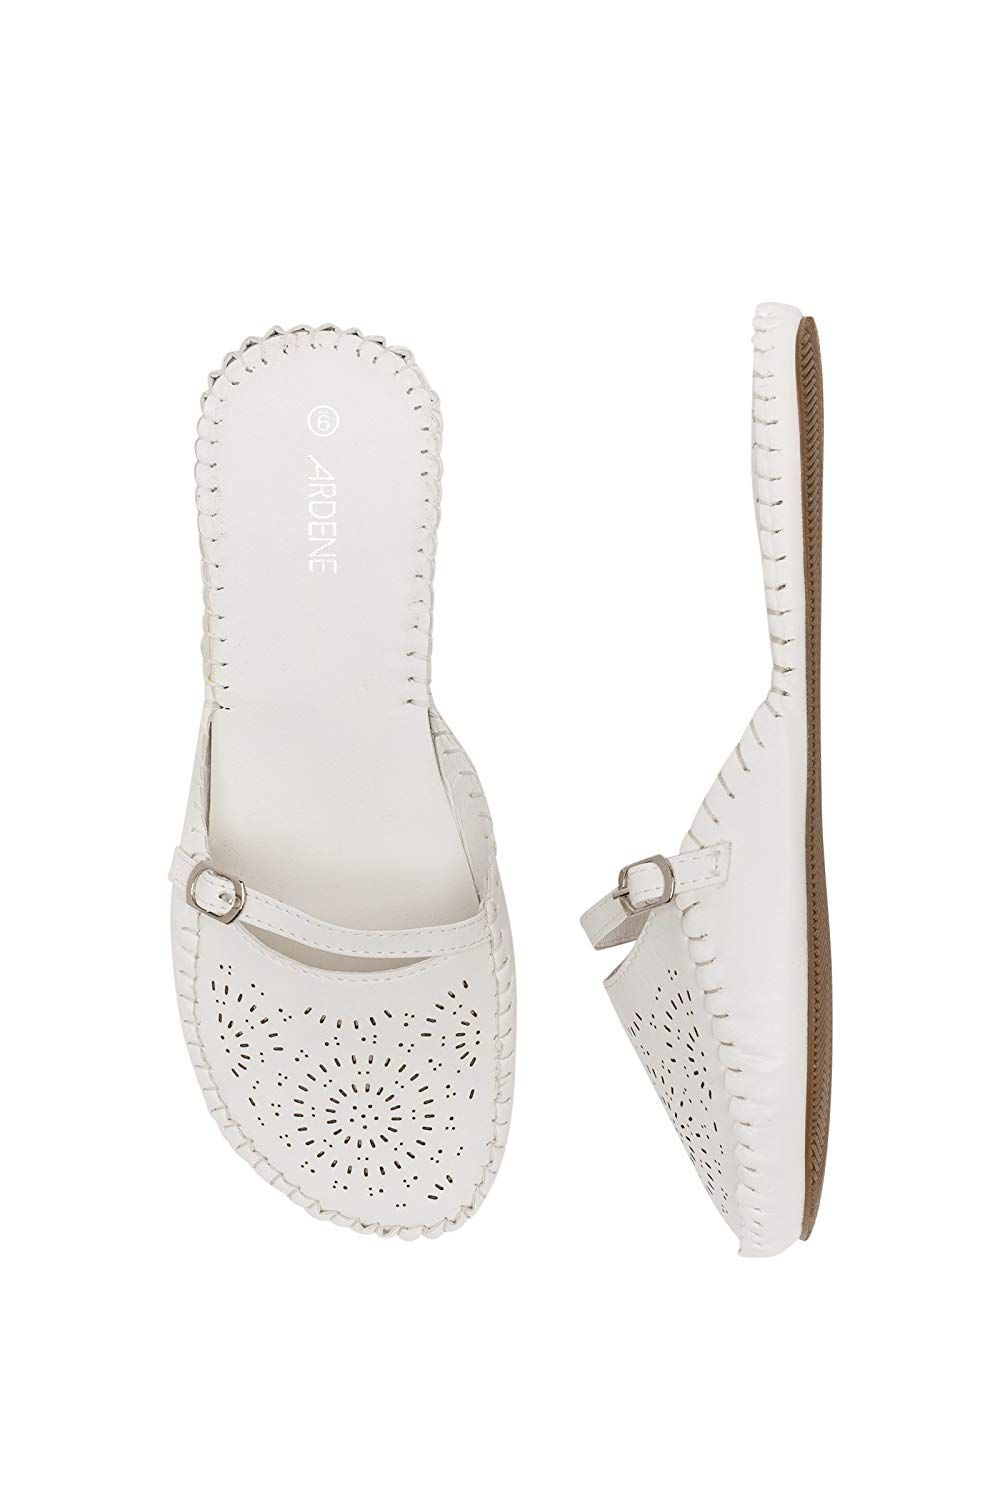 bfaaa8ee3af1 Ardene Women s - Laser Cut Slides    Do hope you do enjoy our picture.  (This is our affiliate link)  womensslidesandals